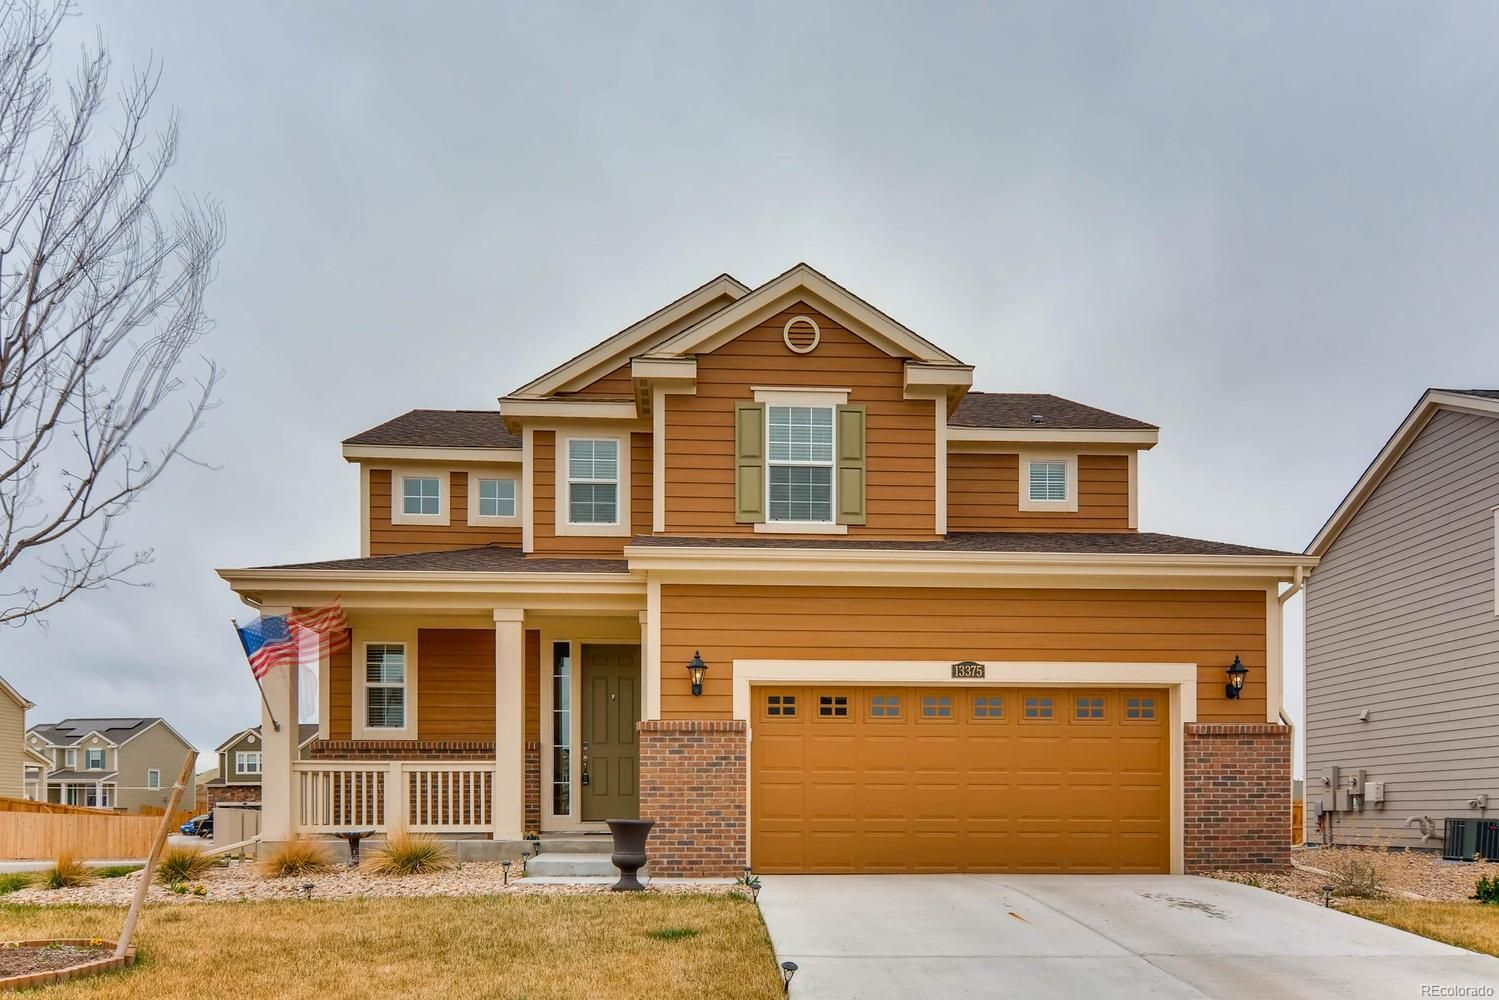 13375 Olive St, Thornton, CO 80602 - Recently Sold | Trulia